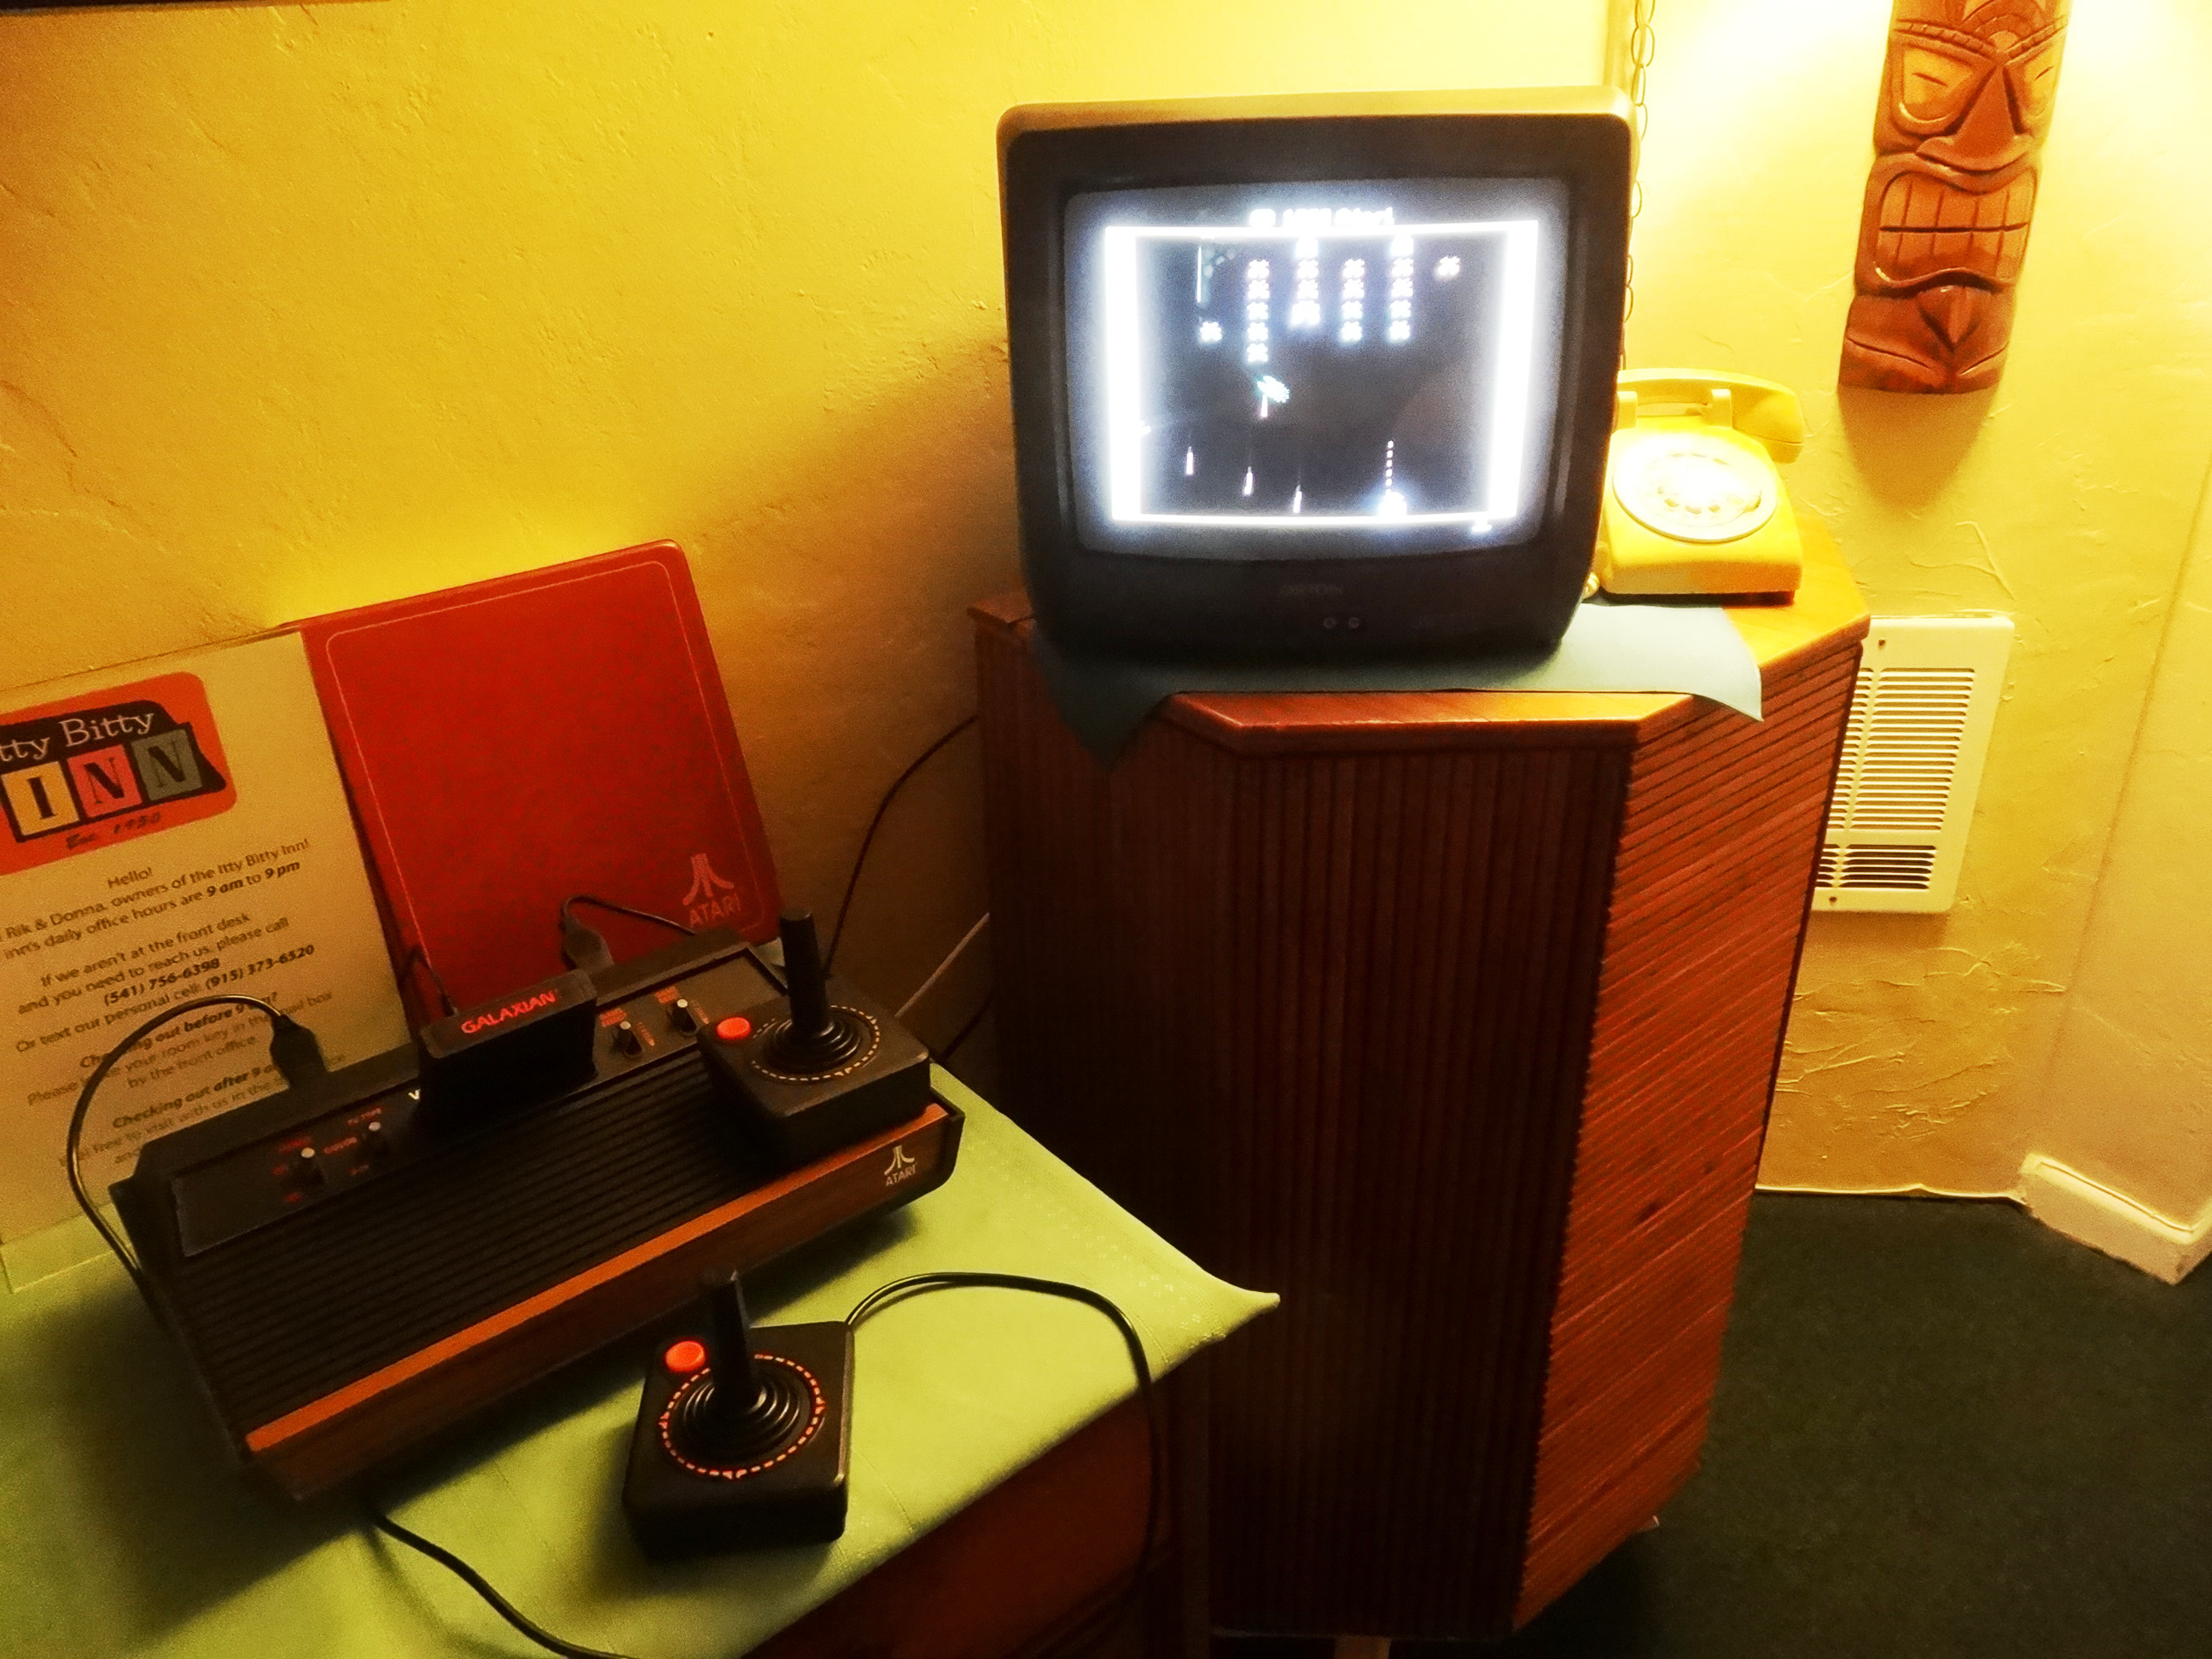 itty bitty inn motel hotel coos bay north bend oregon coast atari vintage